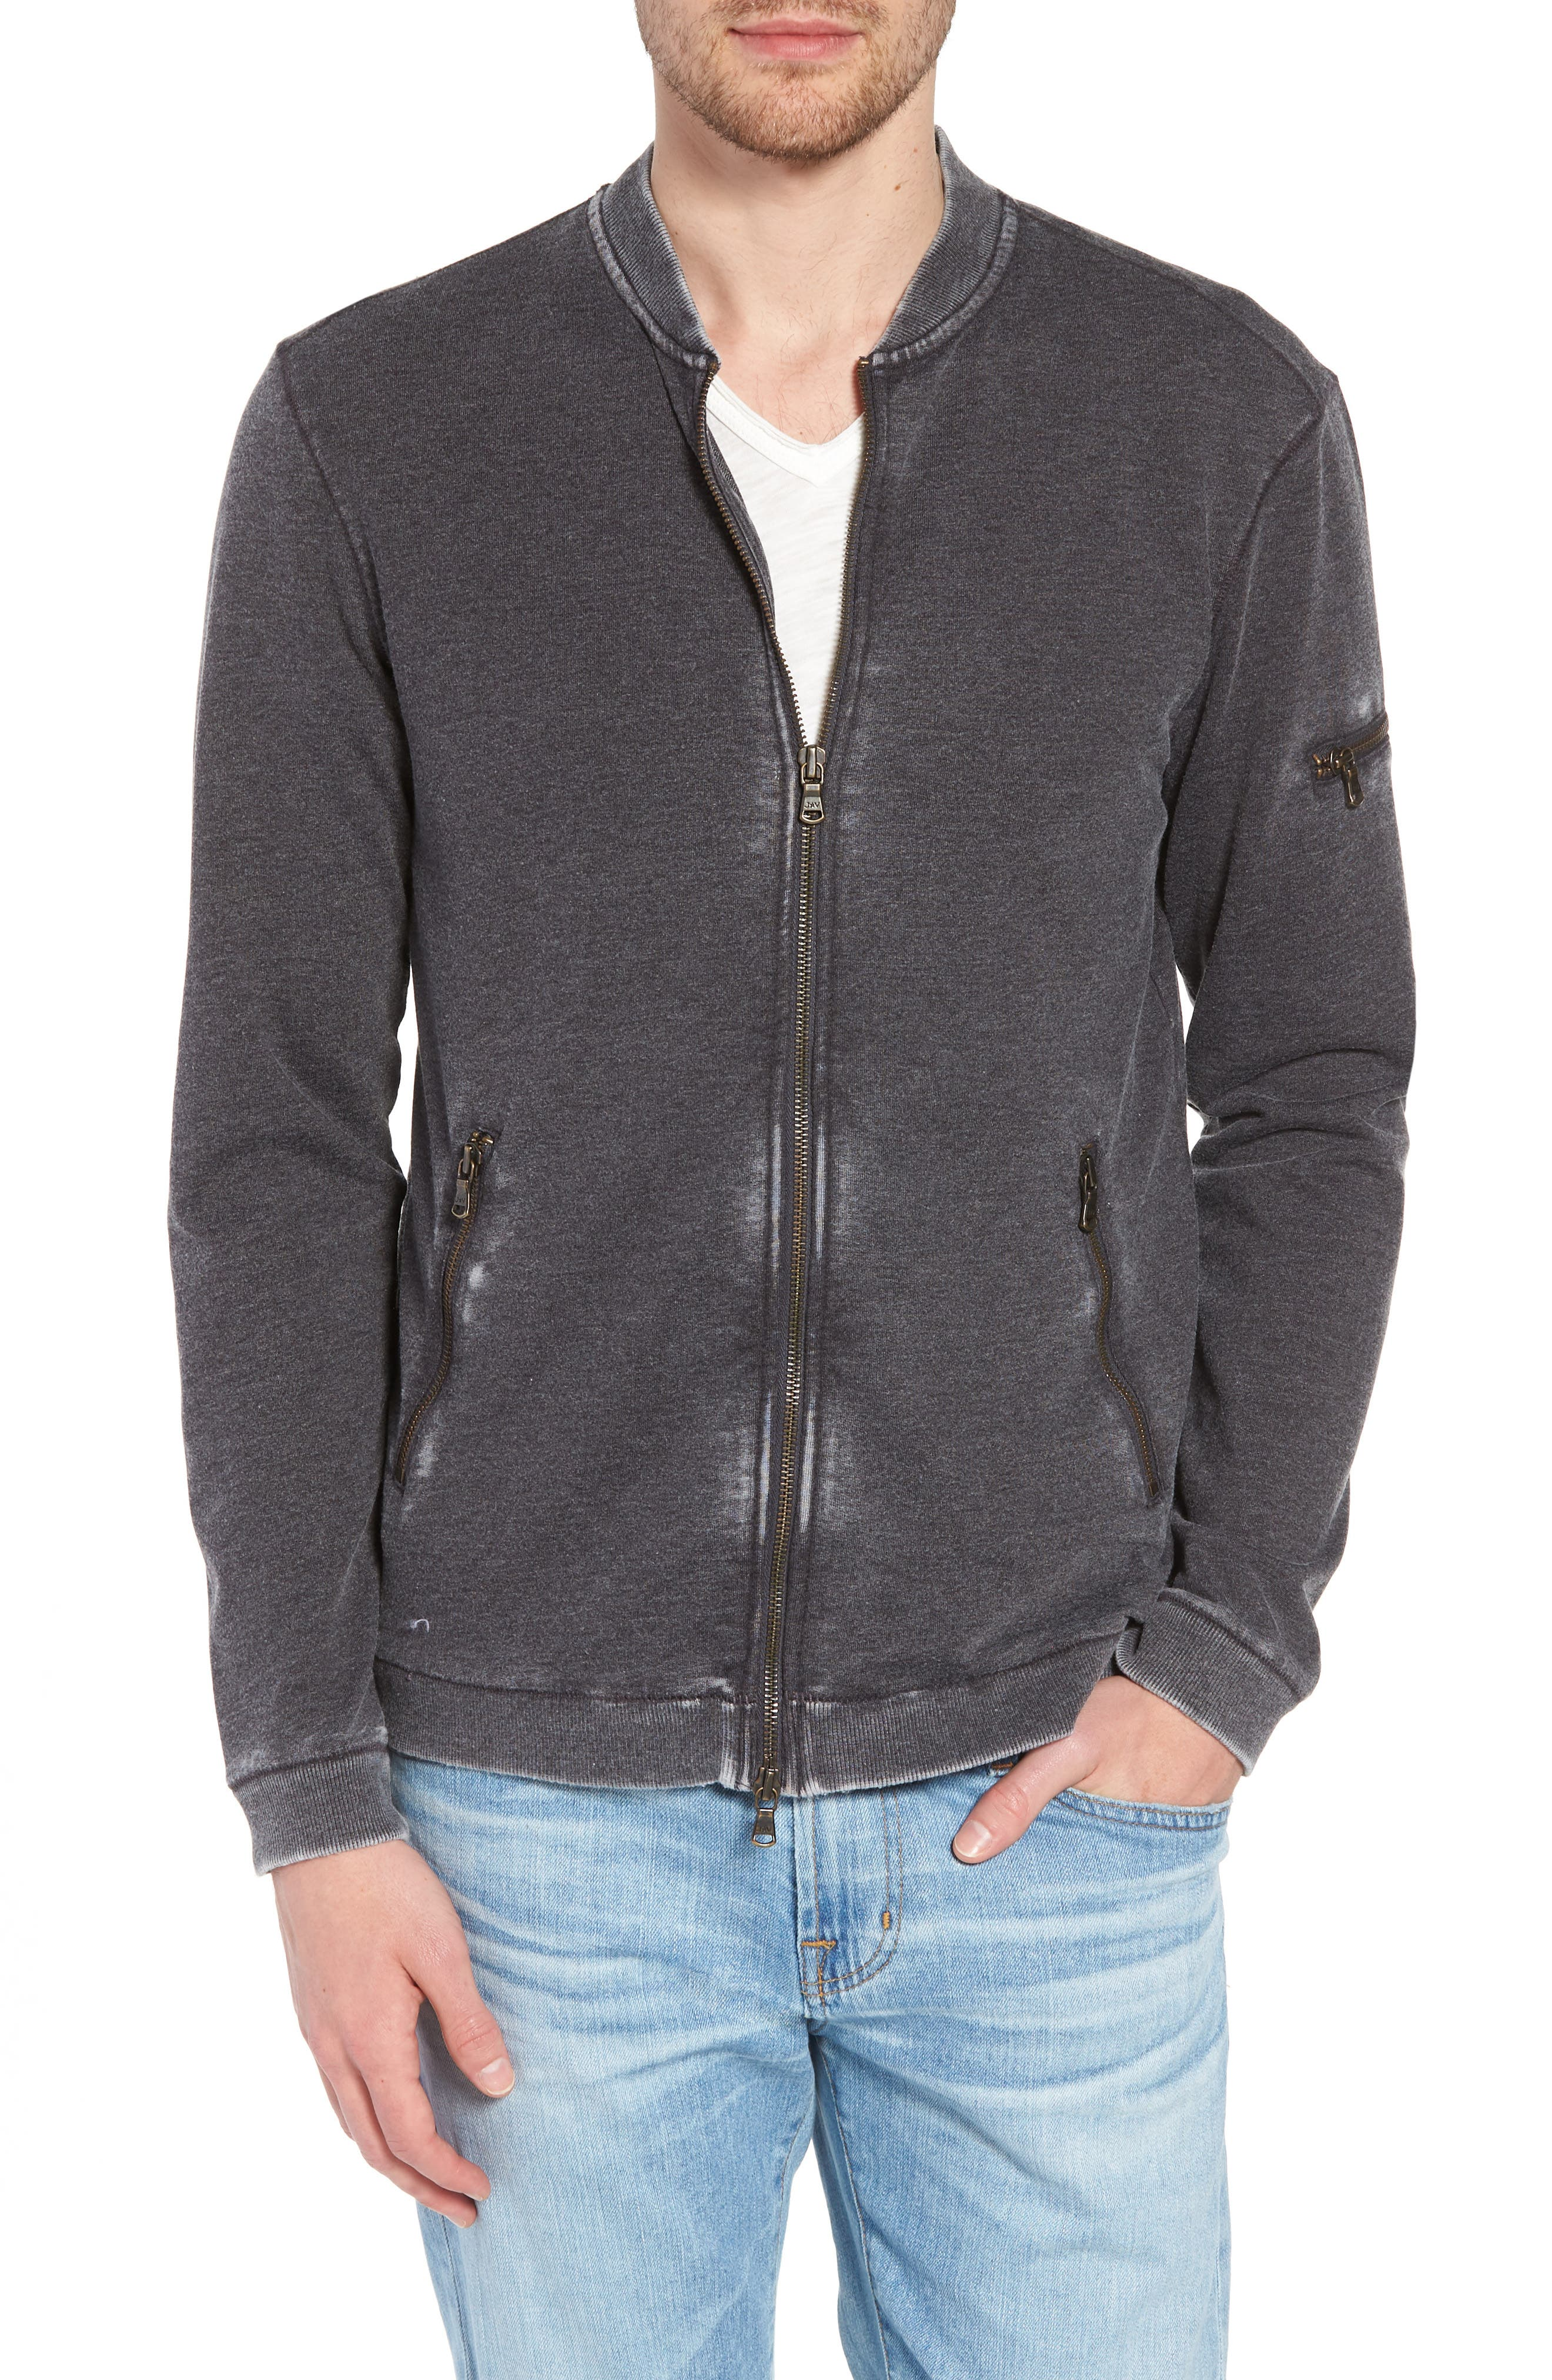 Burnout French Terry Zip Sweater,                             Alternate thumbnail 4, color,                             032